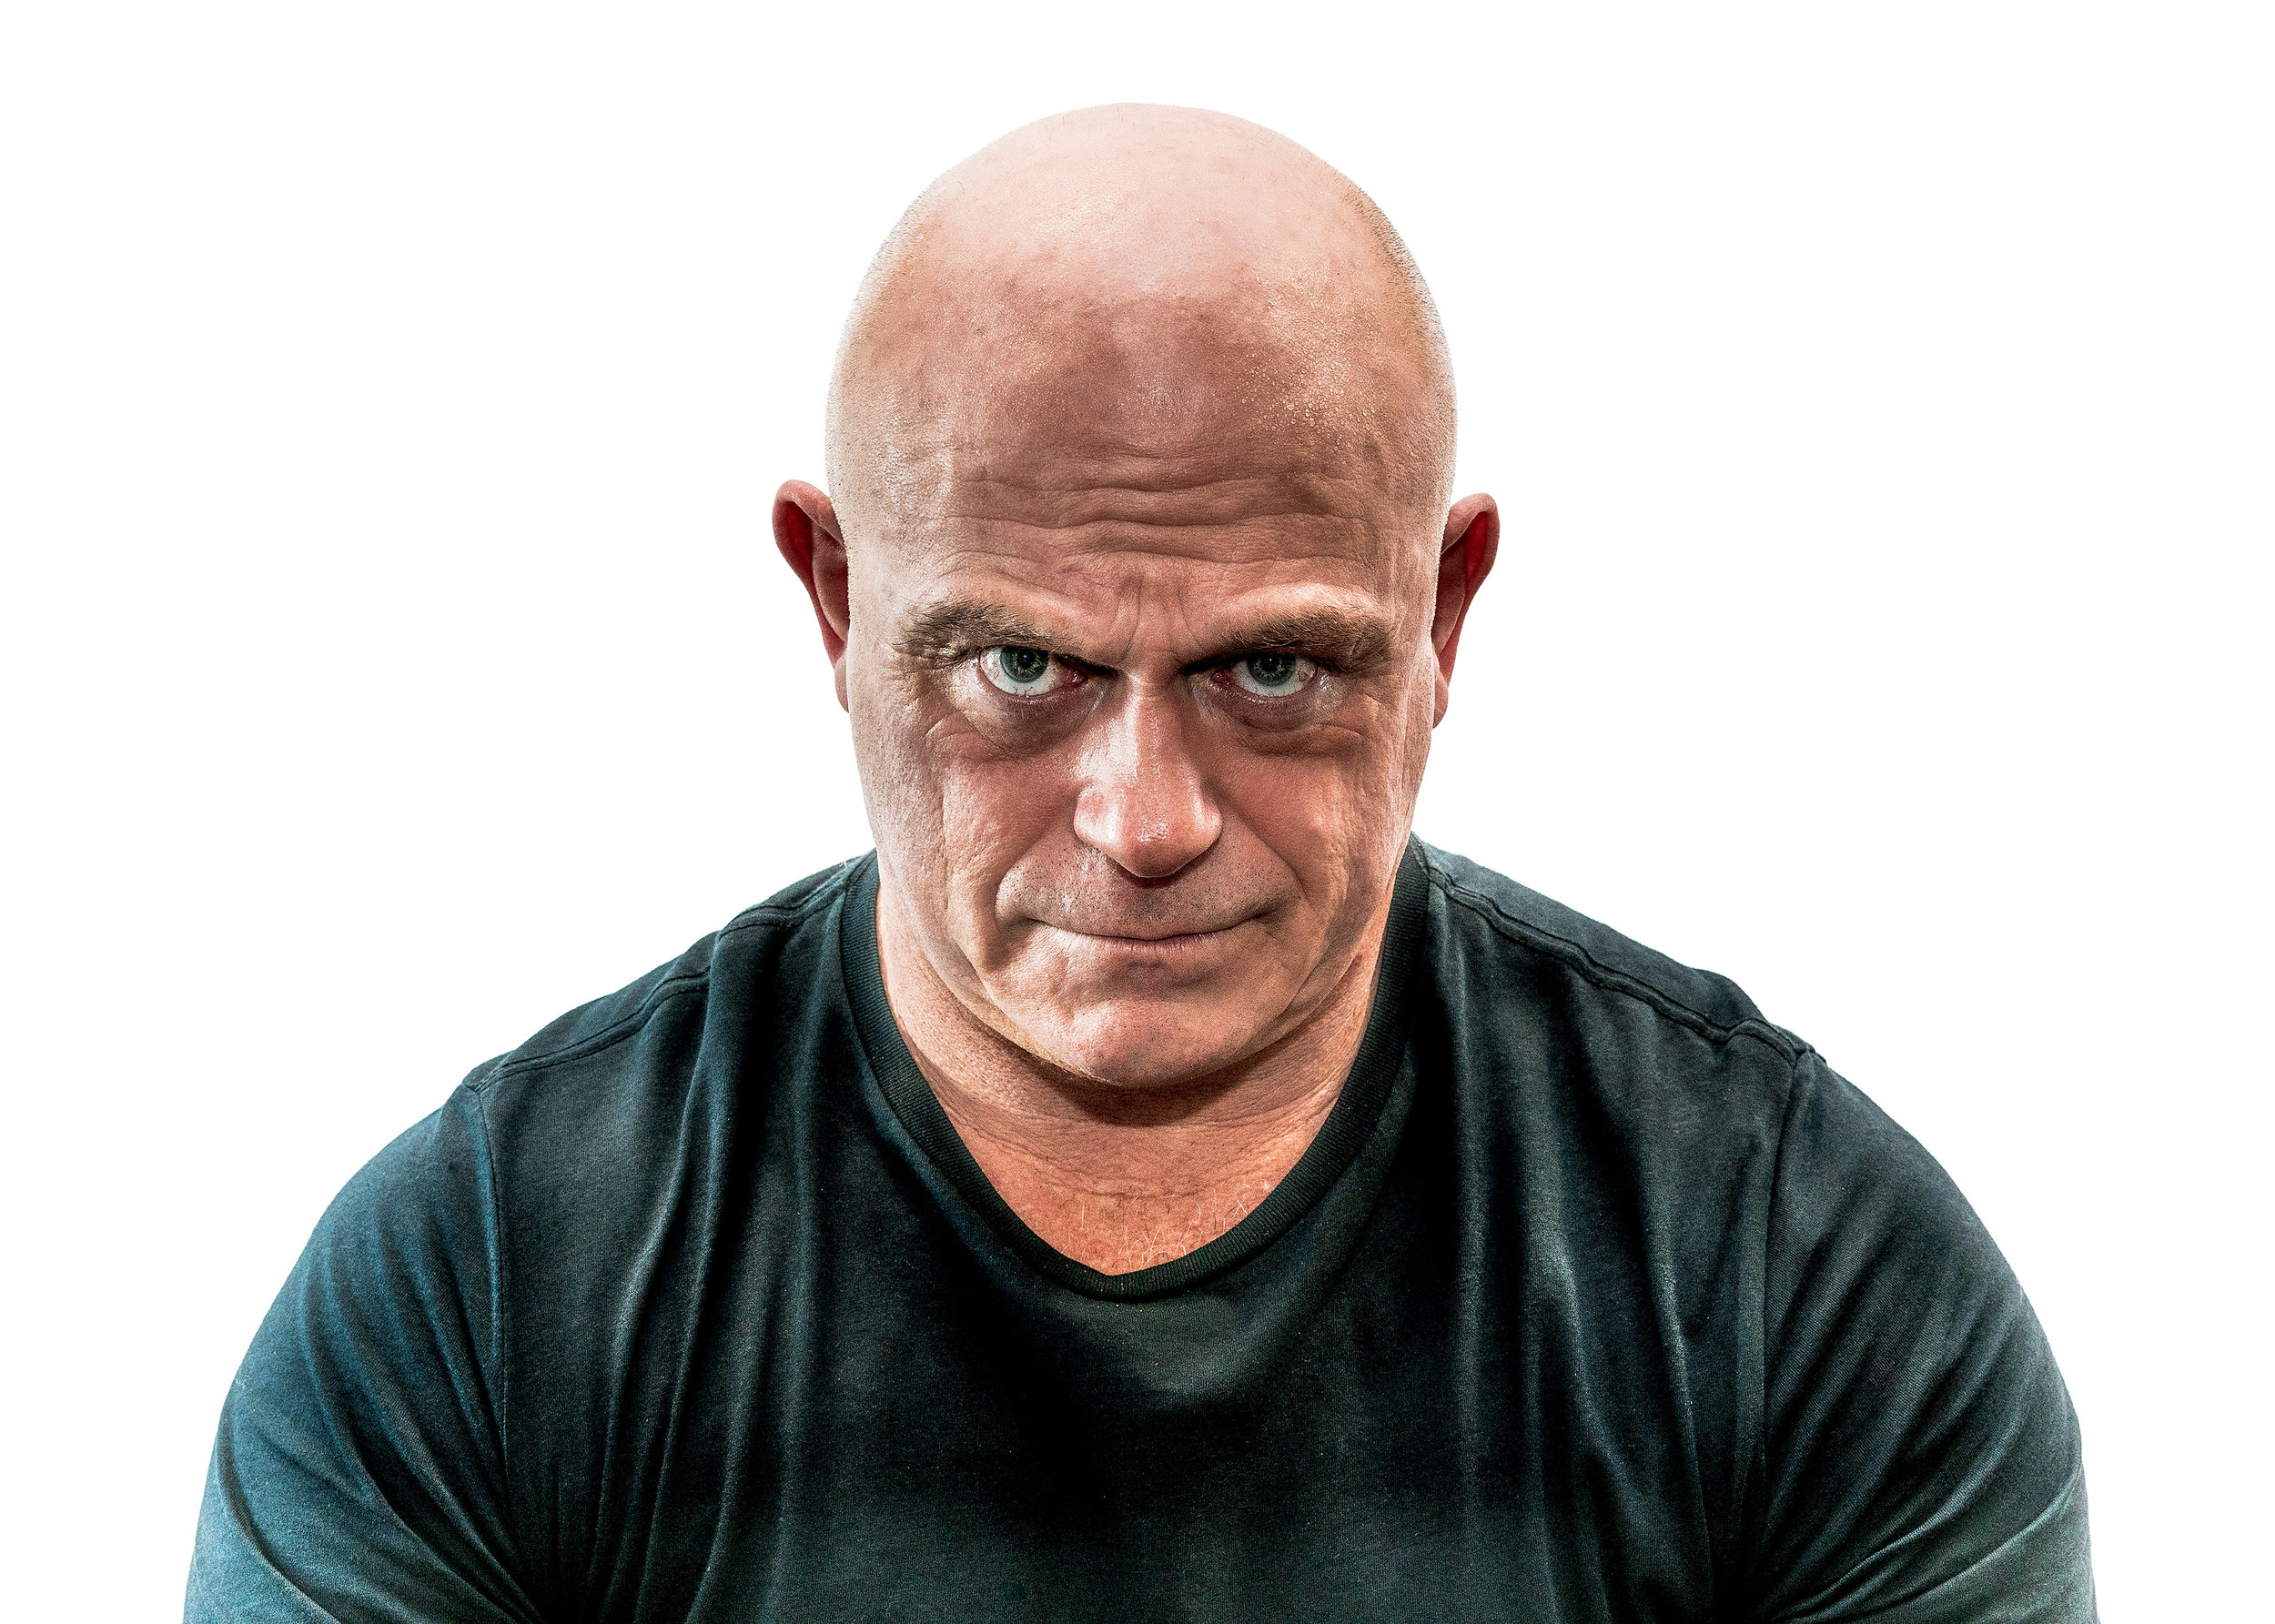 rosskemp_edit.jpg